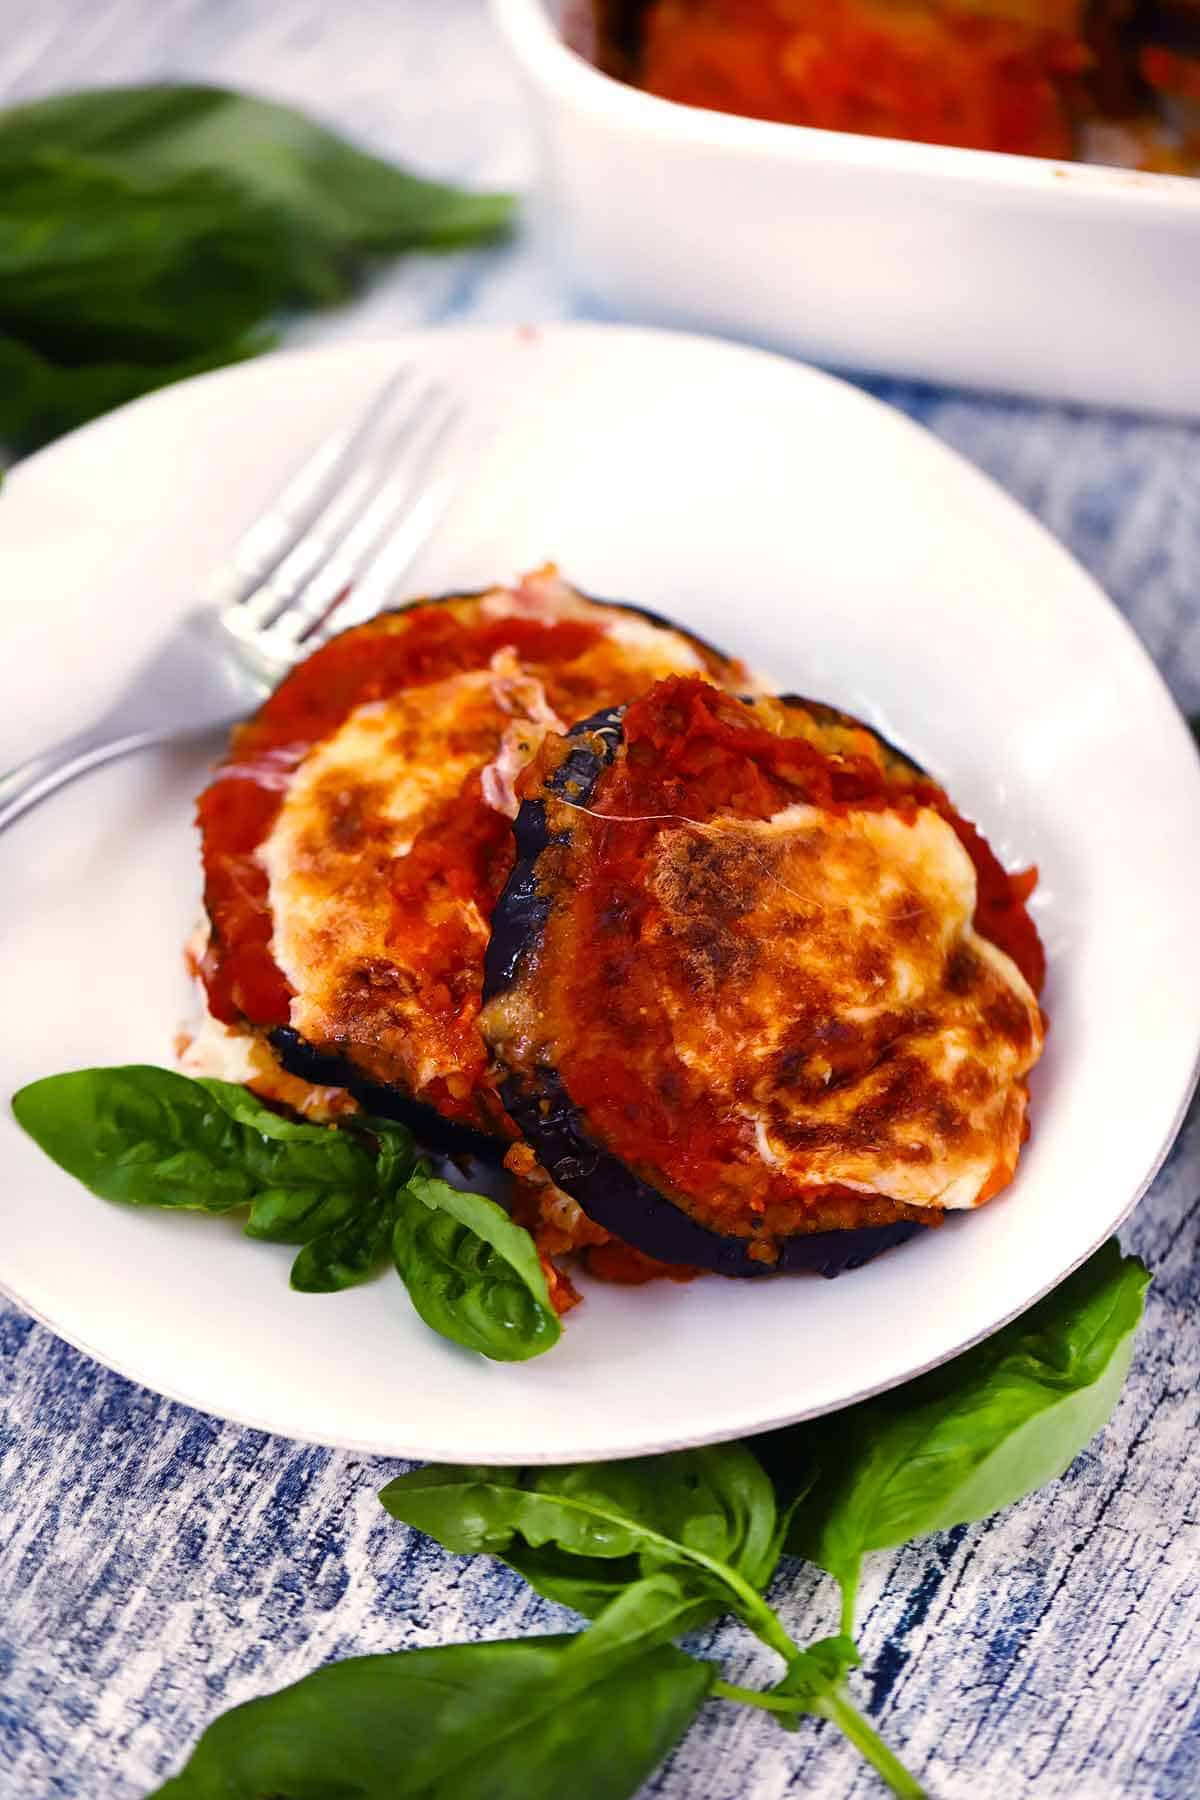 Eggplant parmesan on a white plate with a garnish of fresh basil.